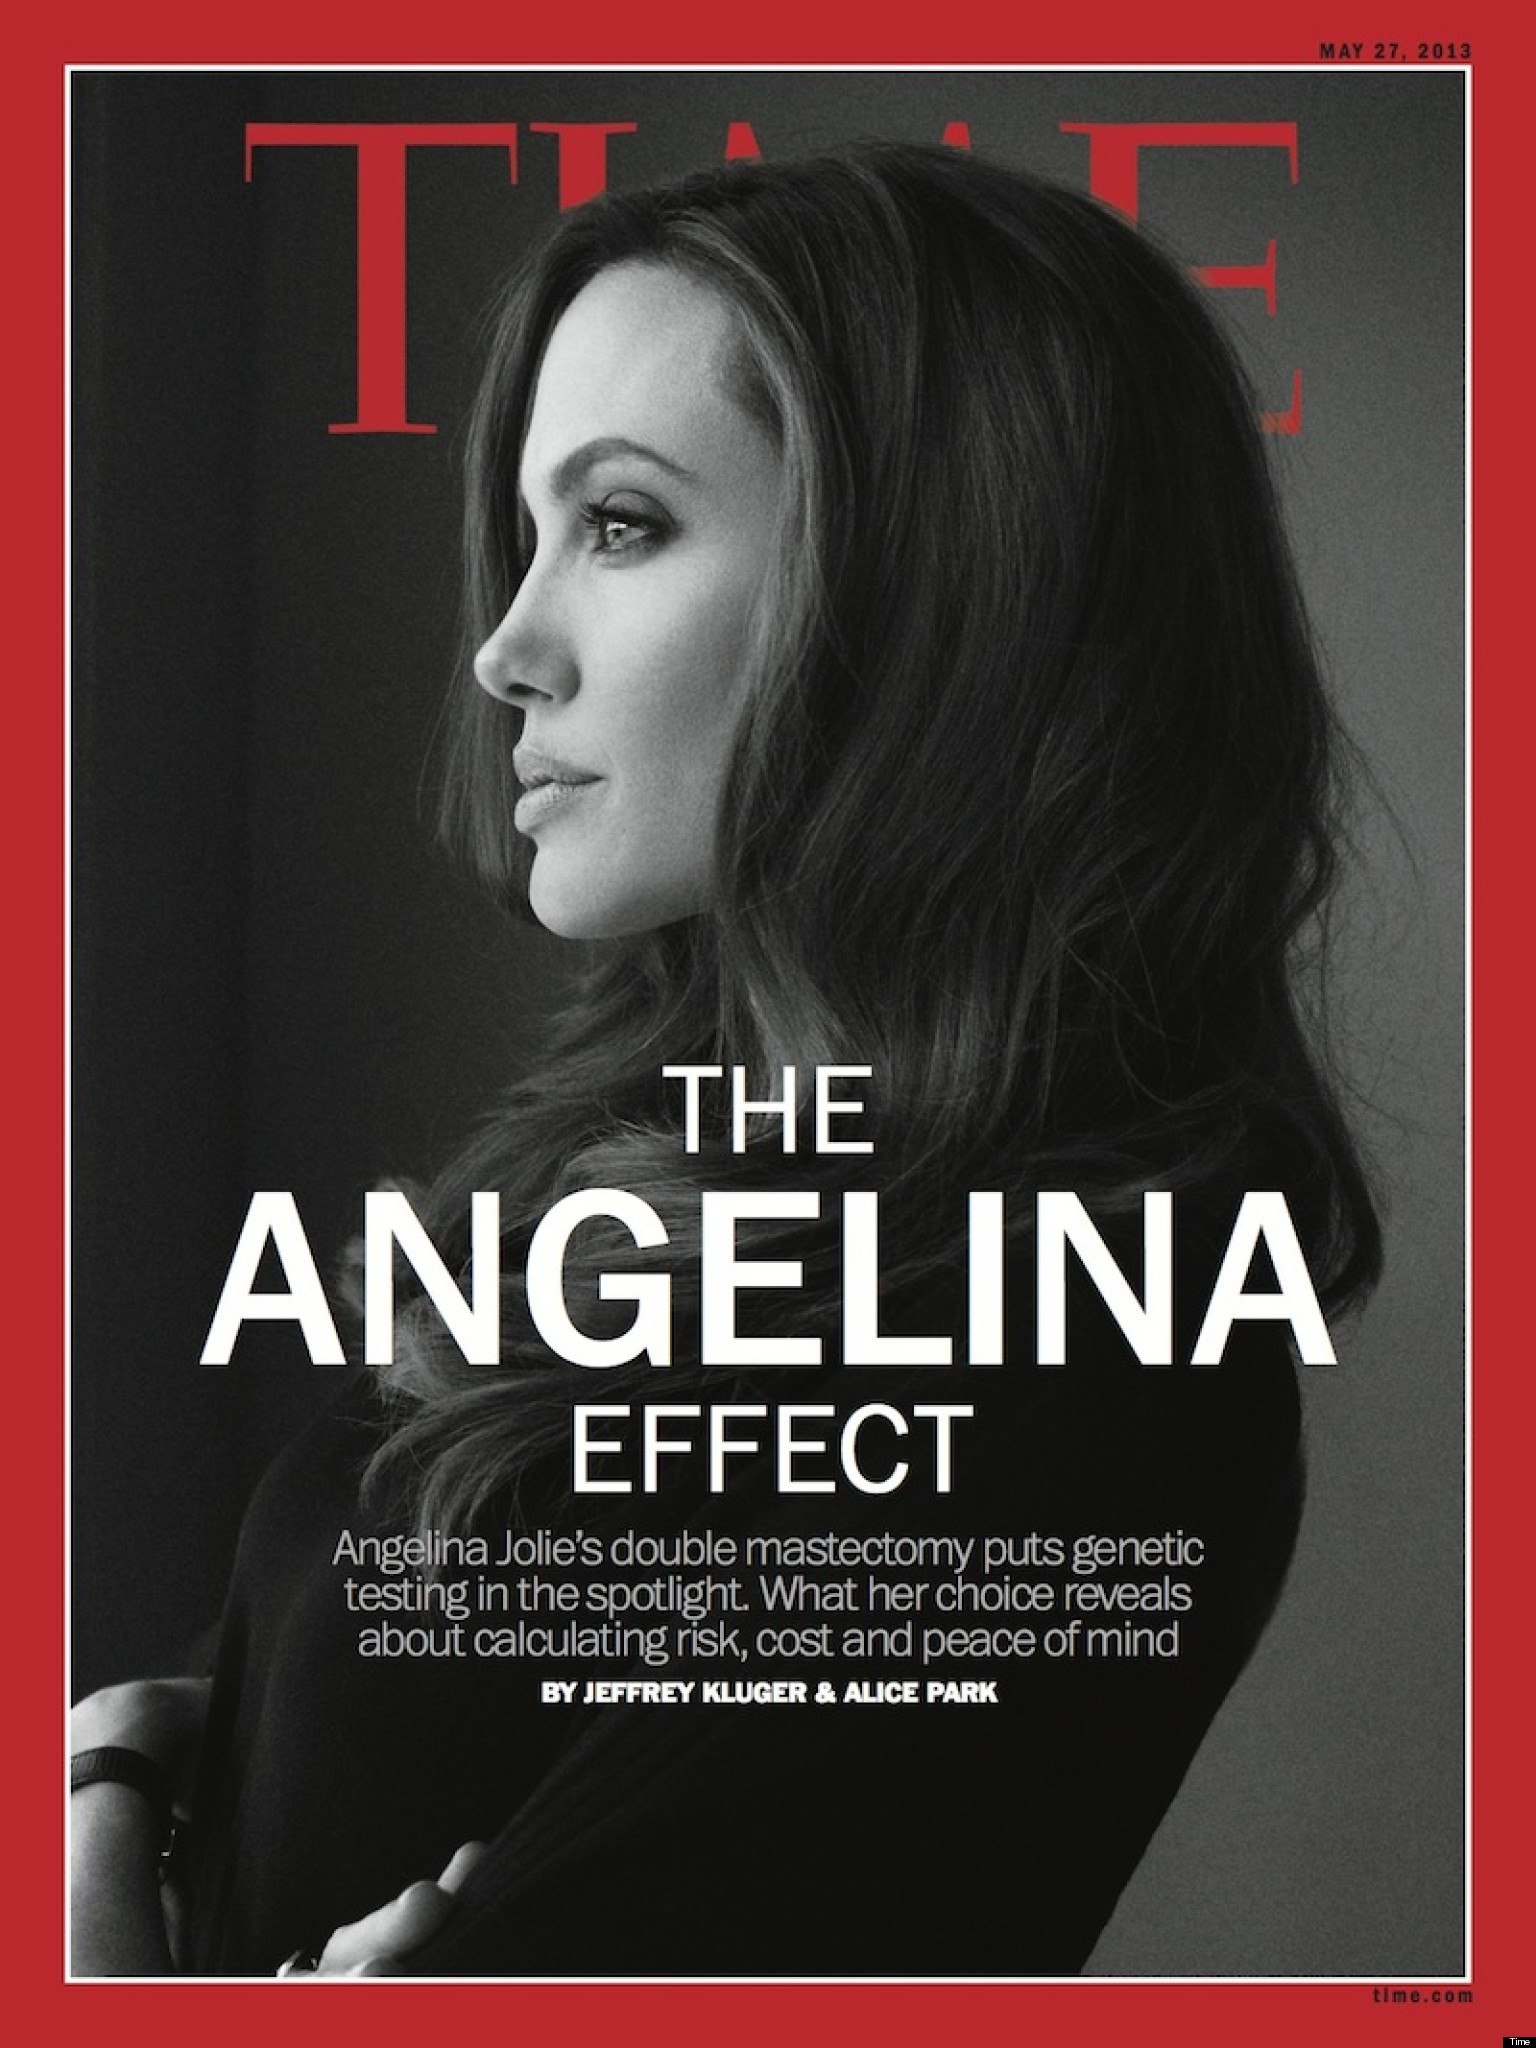 from Adonis go gay for angelina